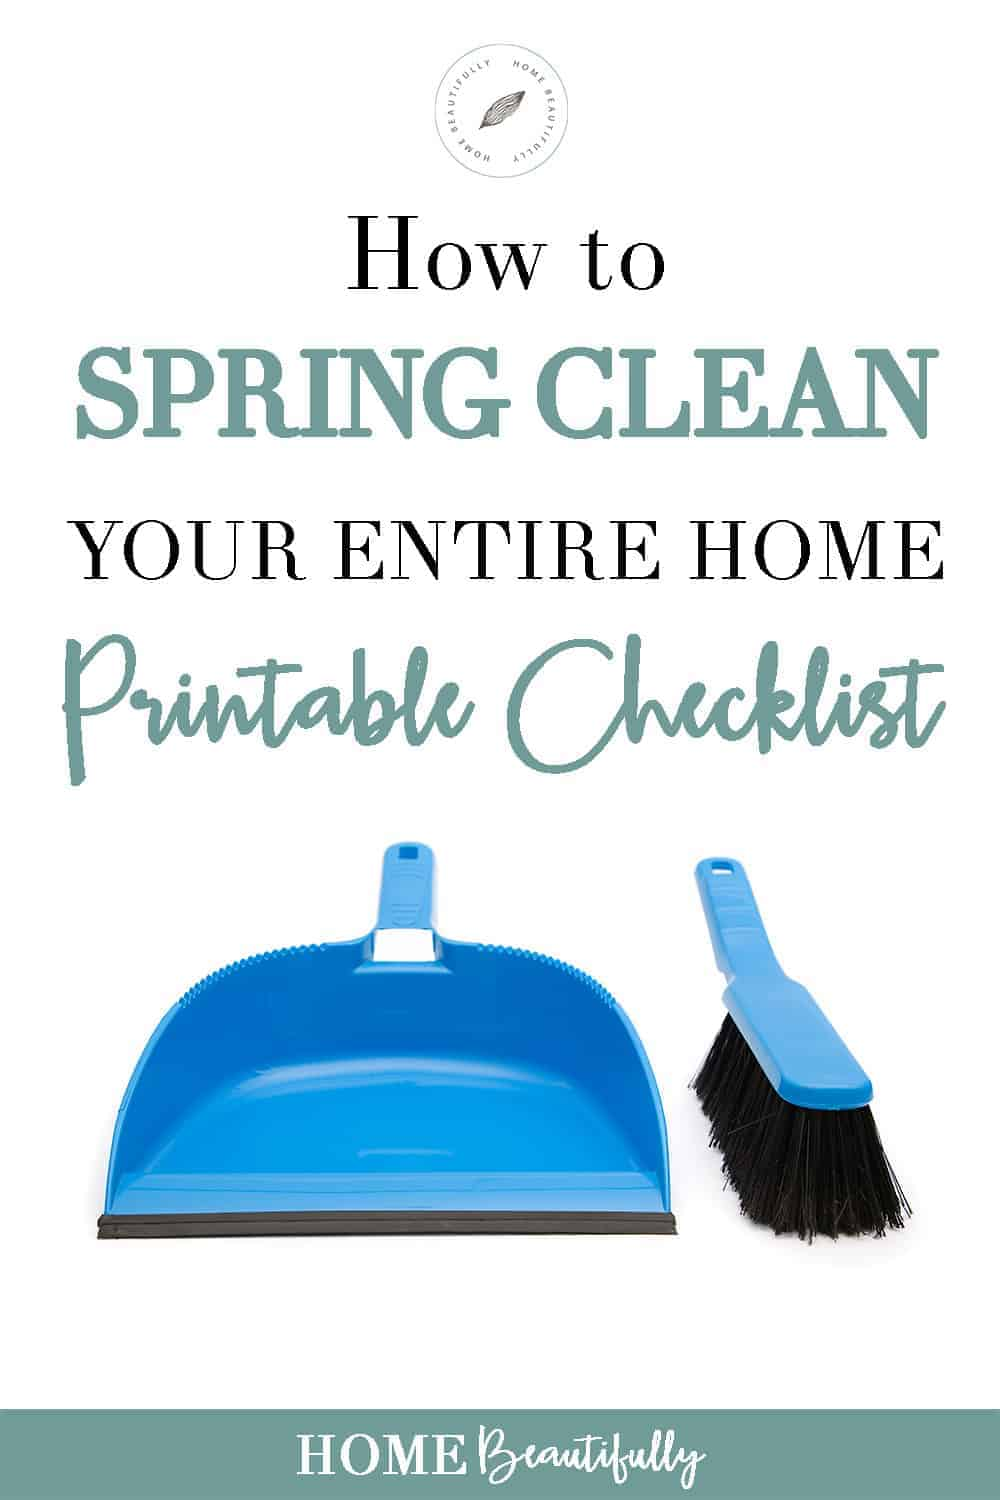 How To Spring Clean Pinterest 2